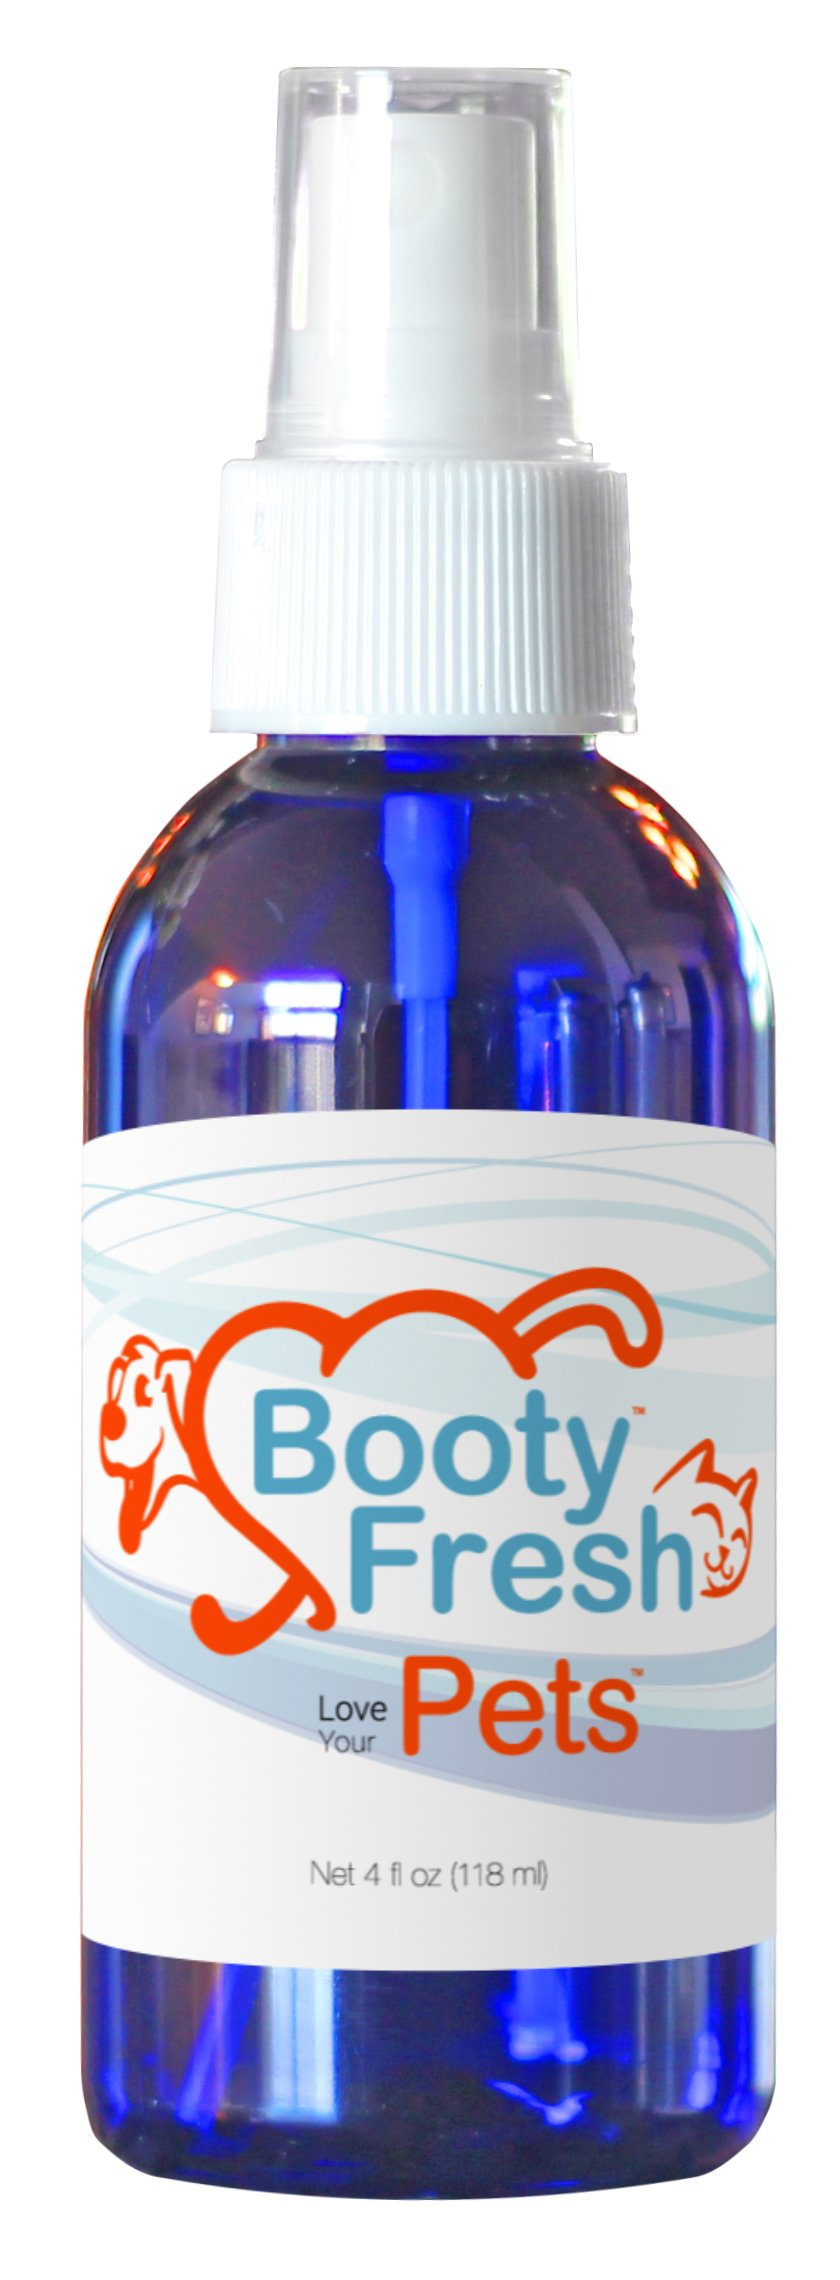 Booty Fresh Pets - Cat and Dog''Back Side'' Odor Lifting Neutralizing Spray - Extra Strength but Safe and Gentle - Spray On Directly & Rinse to Remove Difficult Smells - A Miracle in a Bottle by Booty Fresh